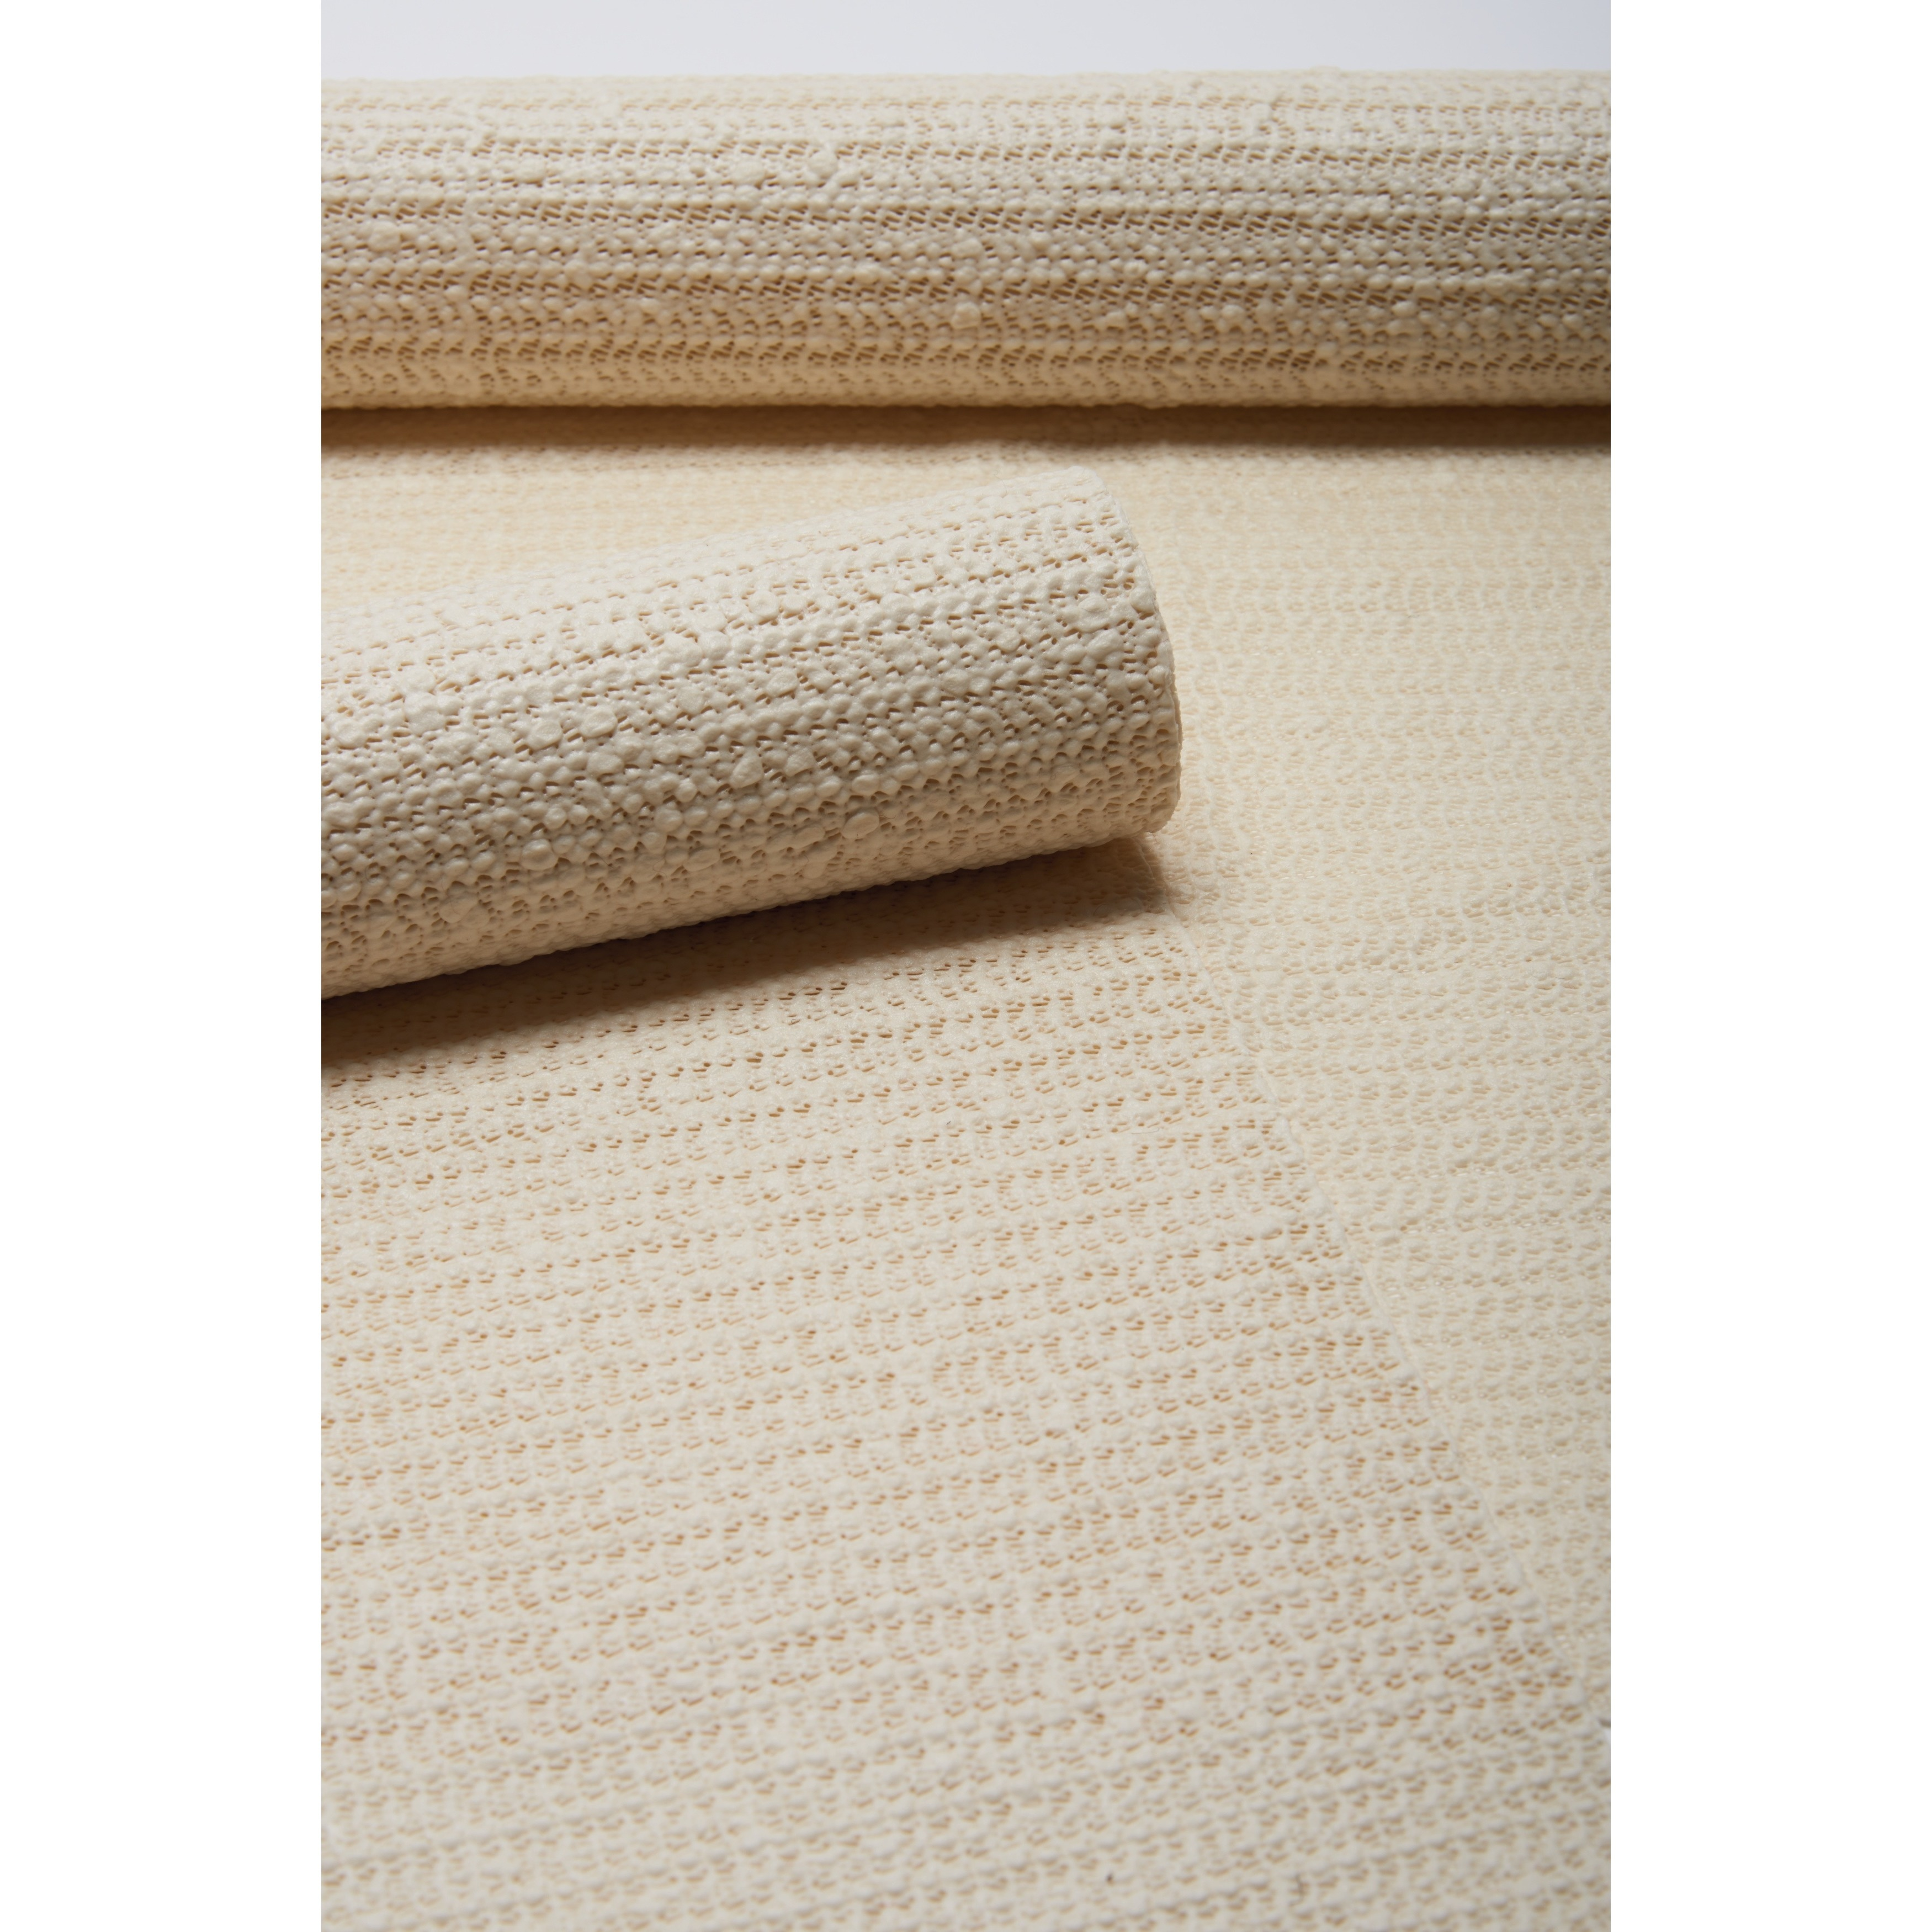 Nourison Non Slip Rug Pad Free Shipping On Orders Over 45 15019910